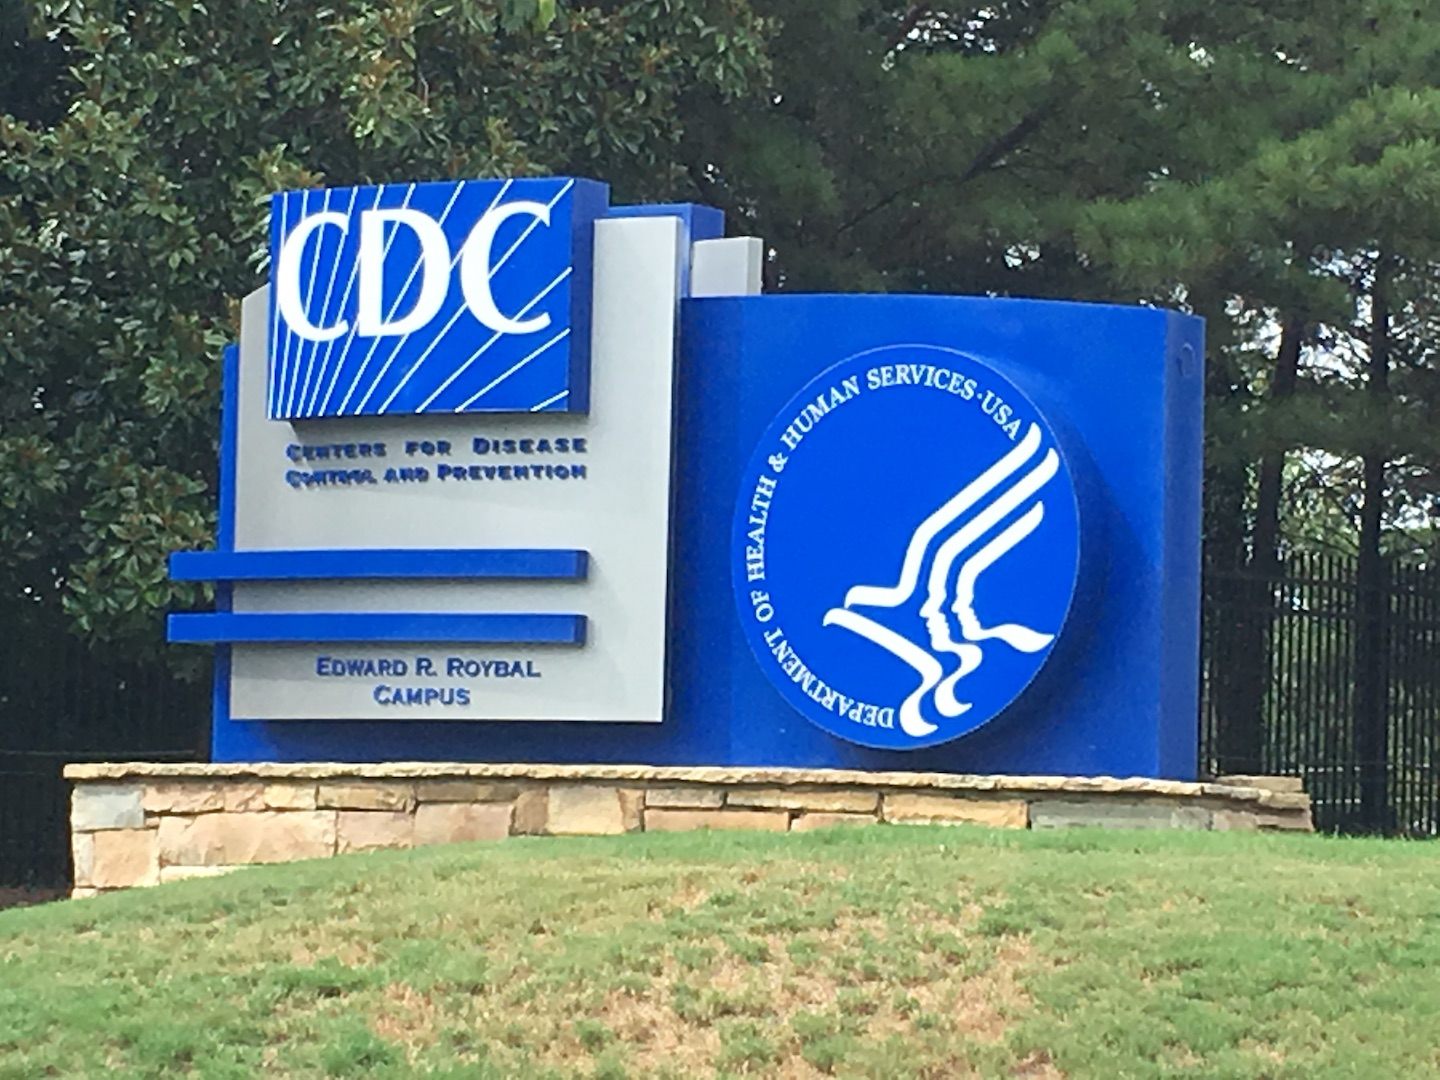 CDC Atlanta from Flickr